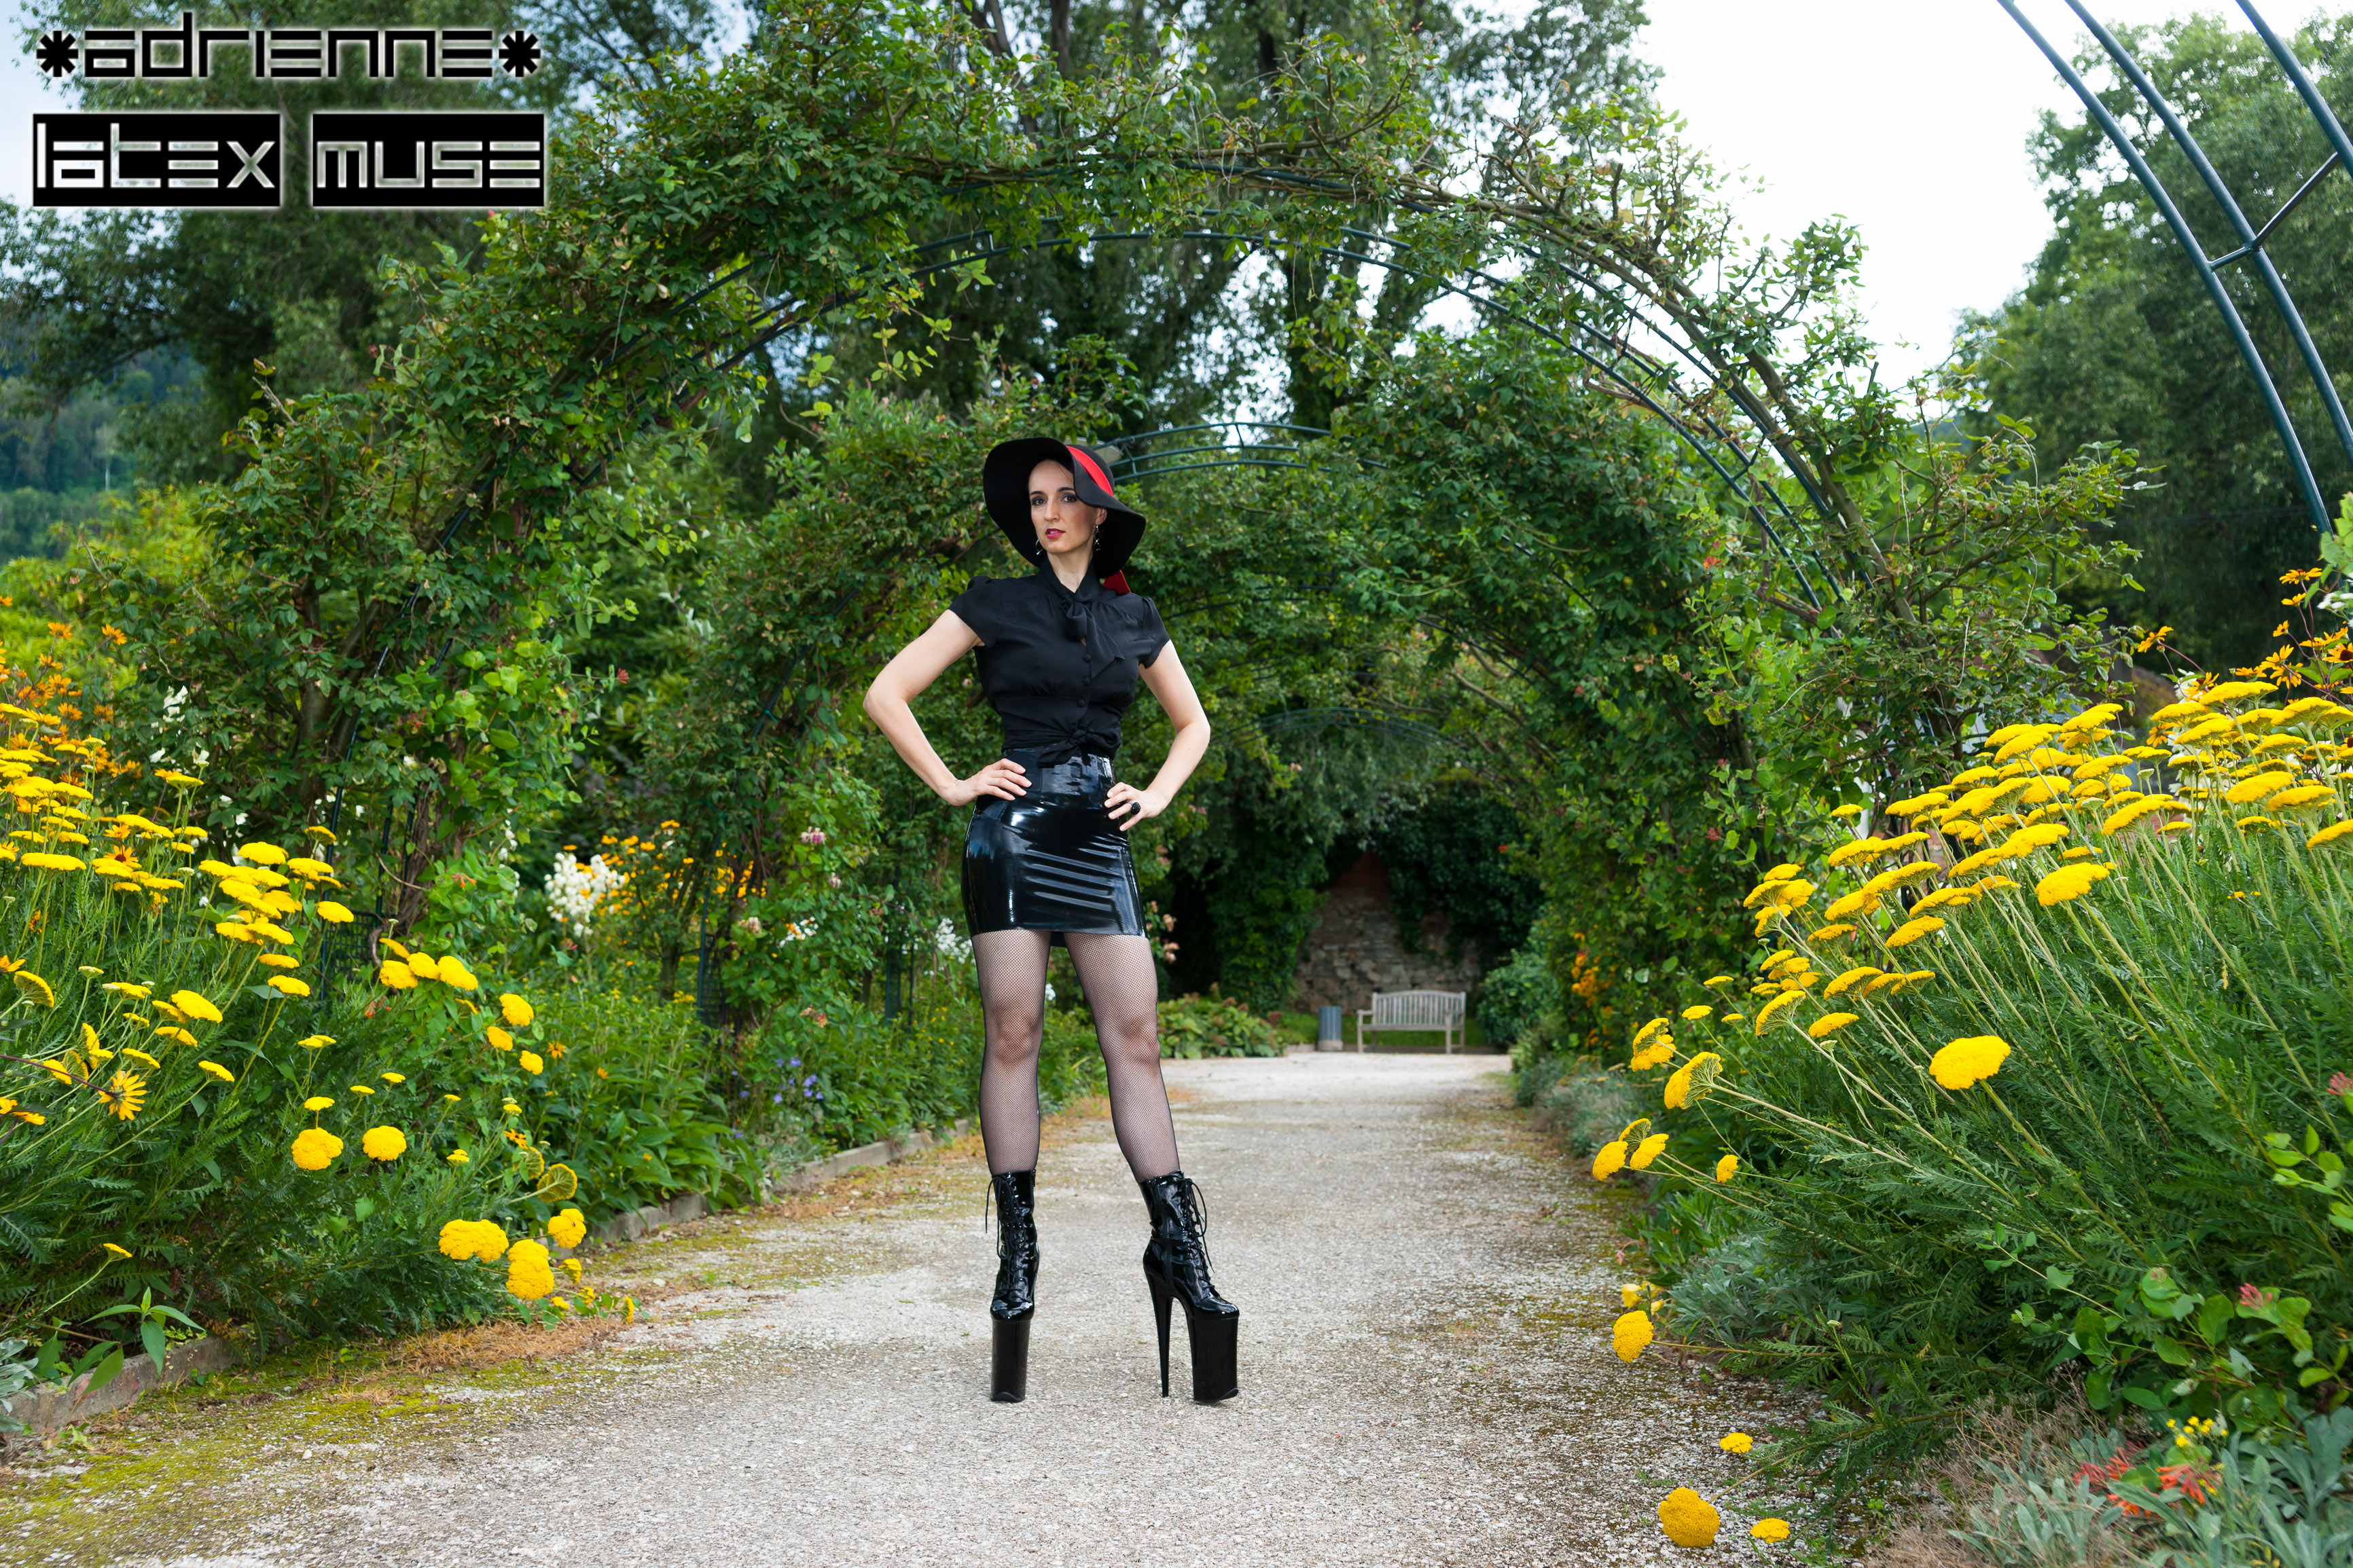 2016 - Latex in the castle garden - part 2